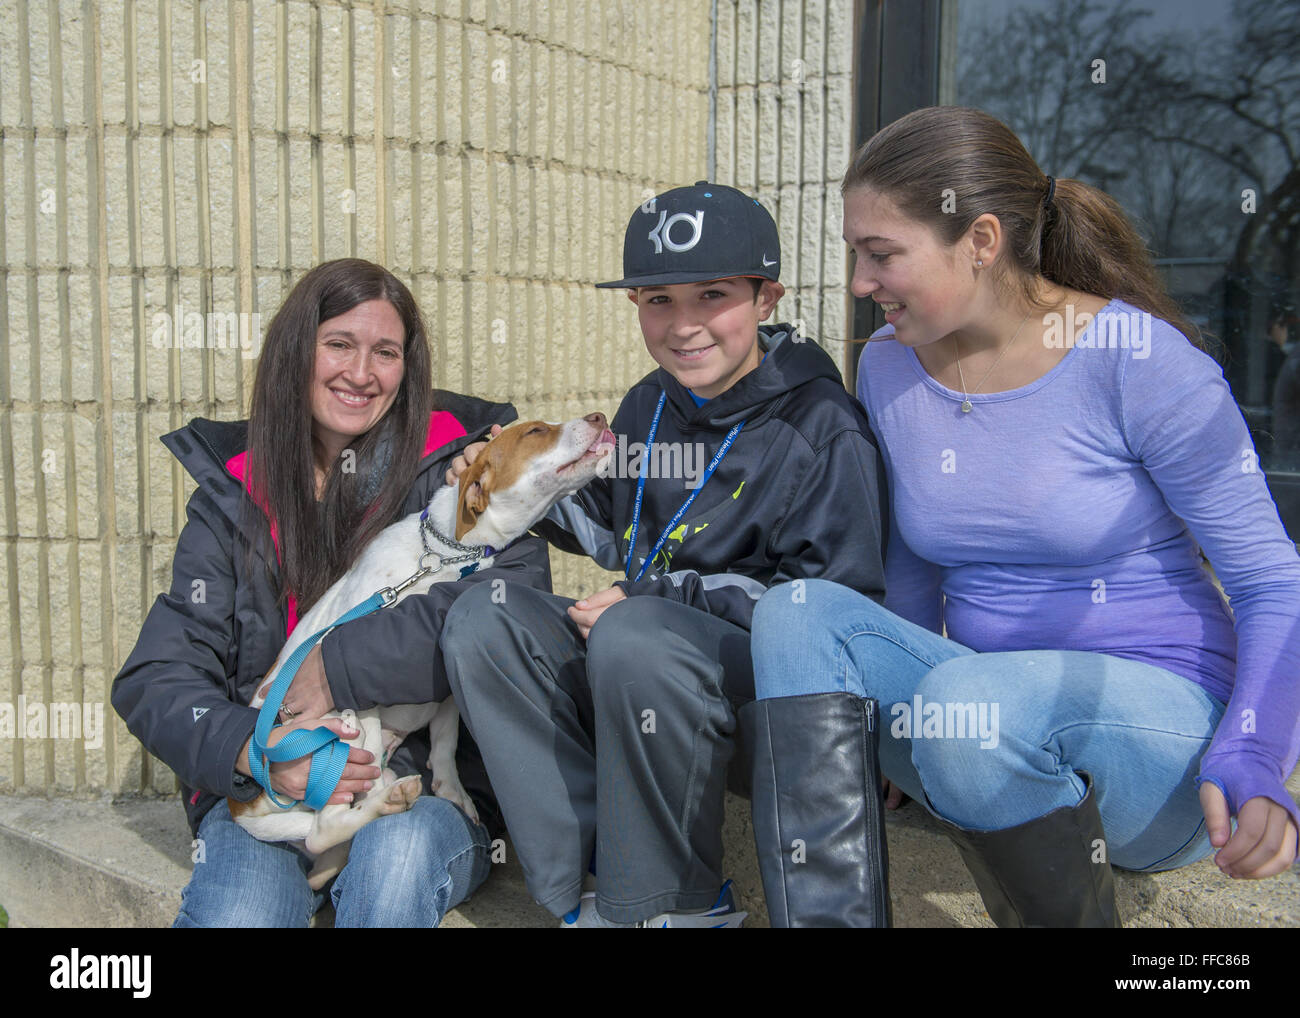 Wantagh, New York, USA. 7th Feb, 2016. Mom SARI, son ANDREW, and daughter EMILY, volunteers from Merrick, pet Halley - Stock Image